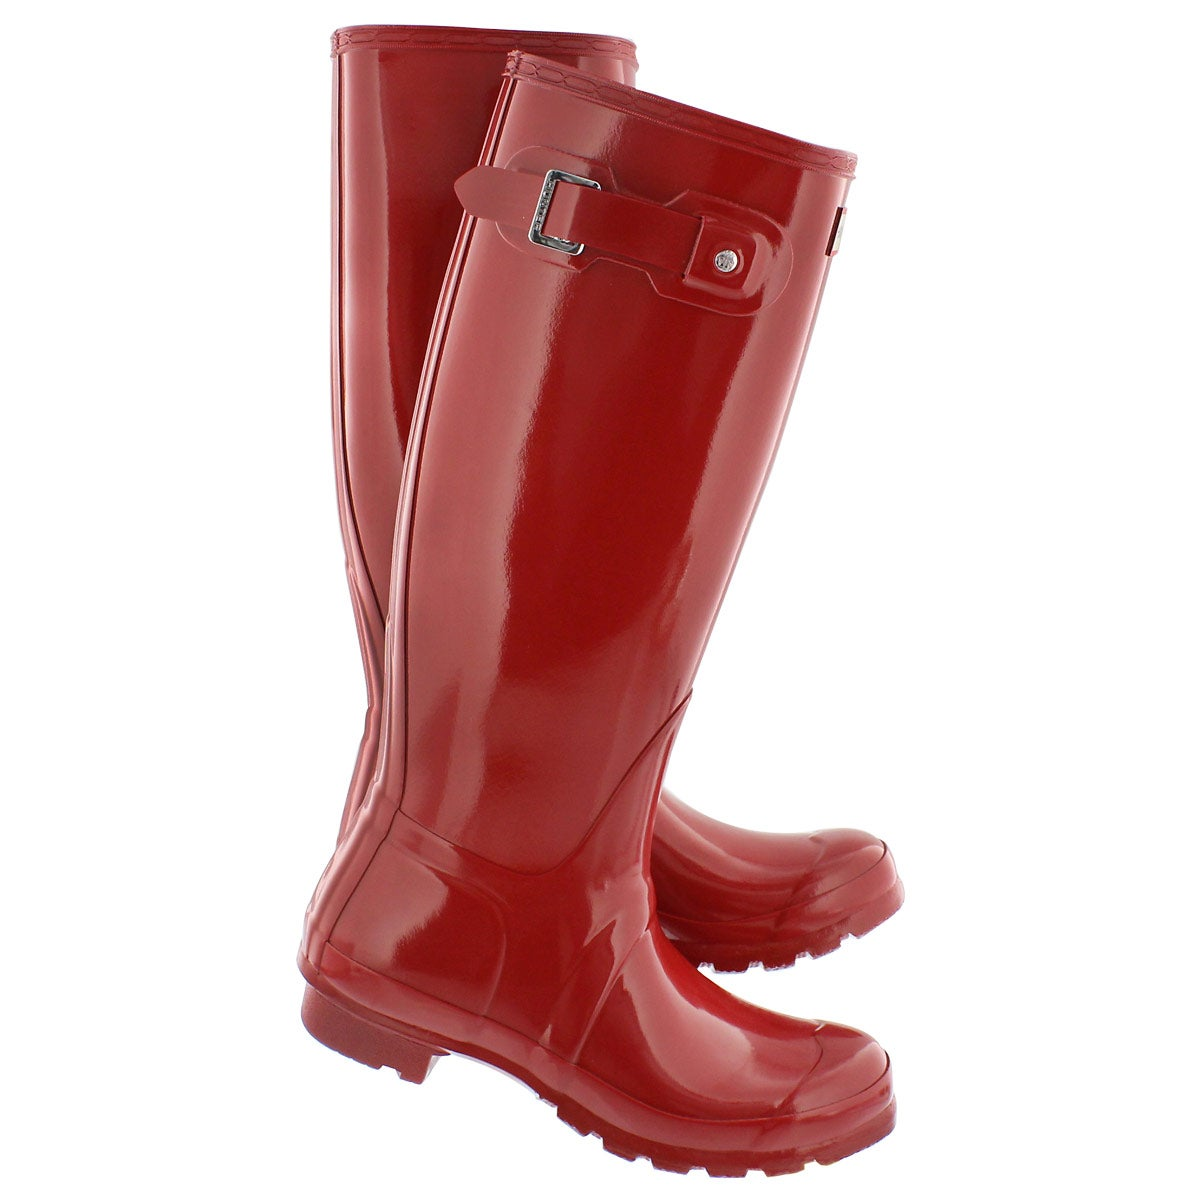 Lds Original Tall Gloss red rain boot